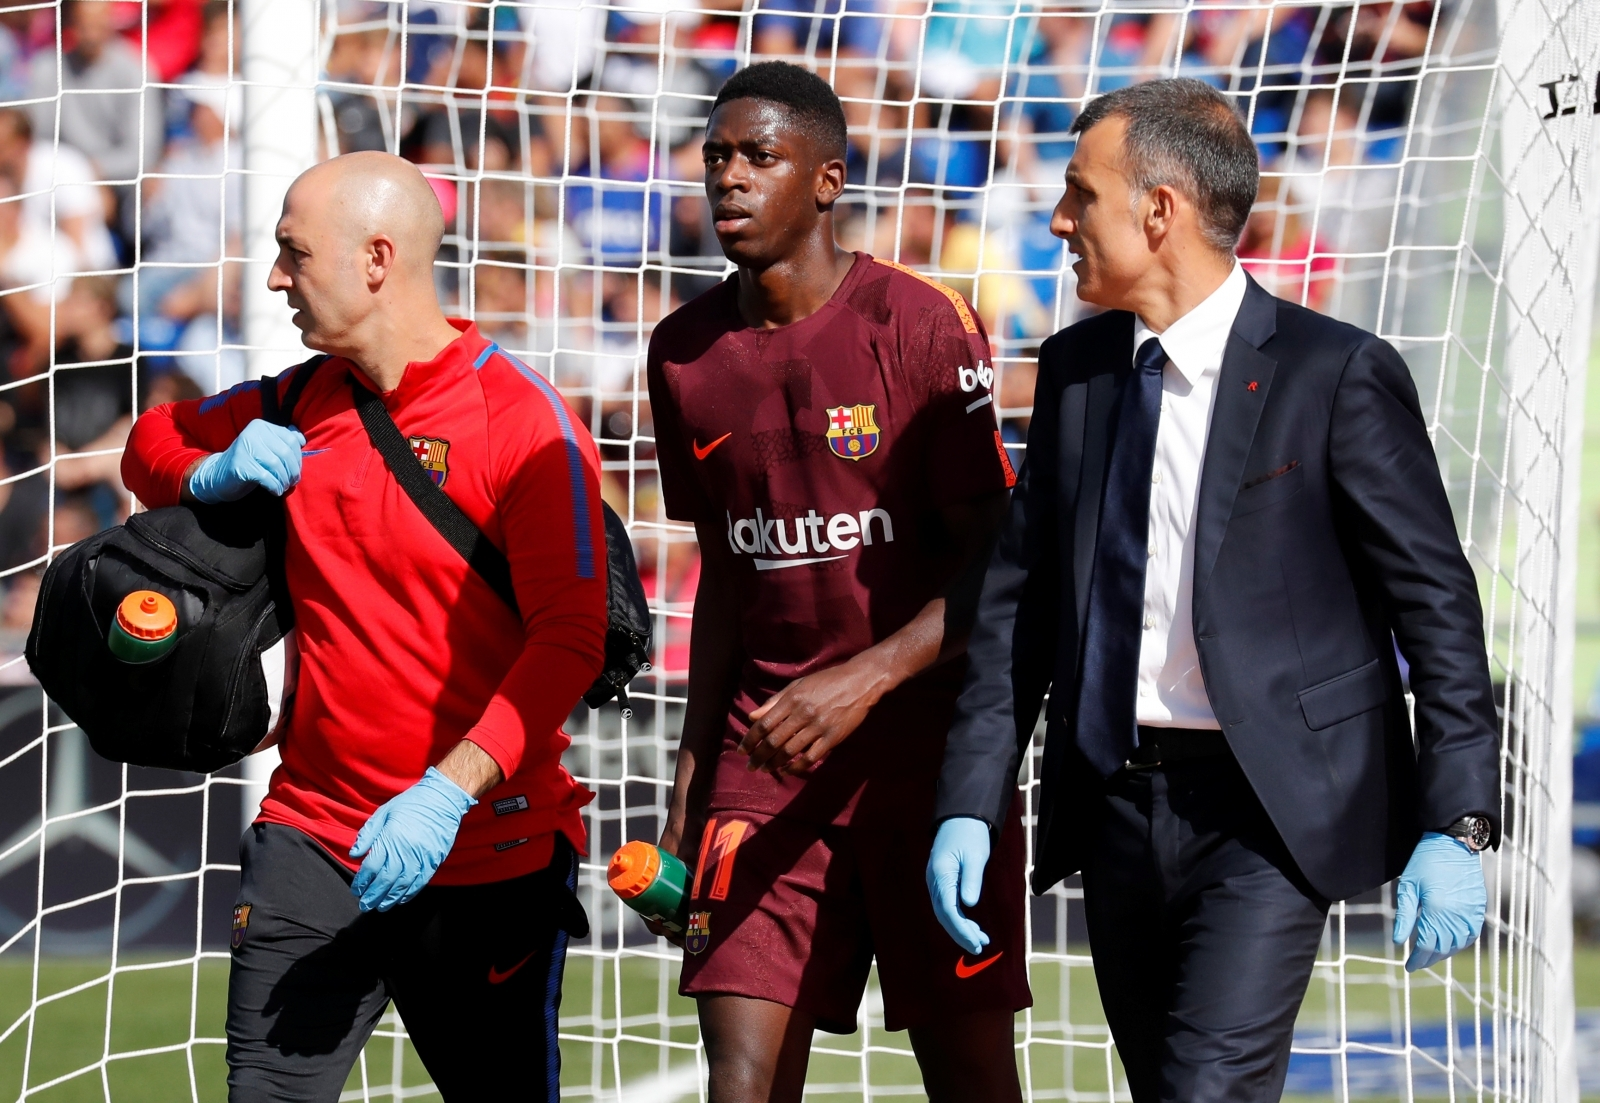 Barcelona's Ousame Dembele undergoes leg surgery, will miss over three months